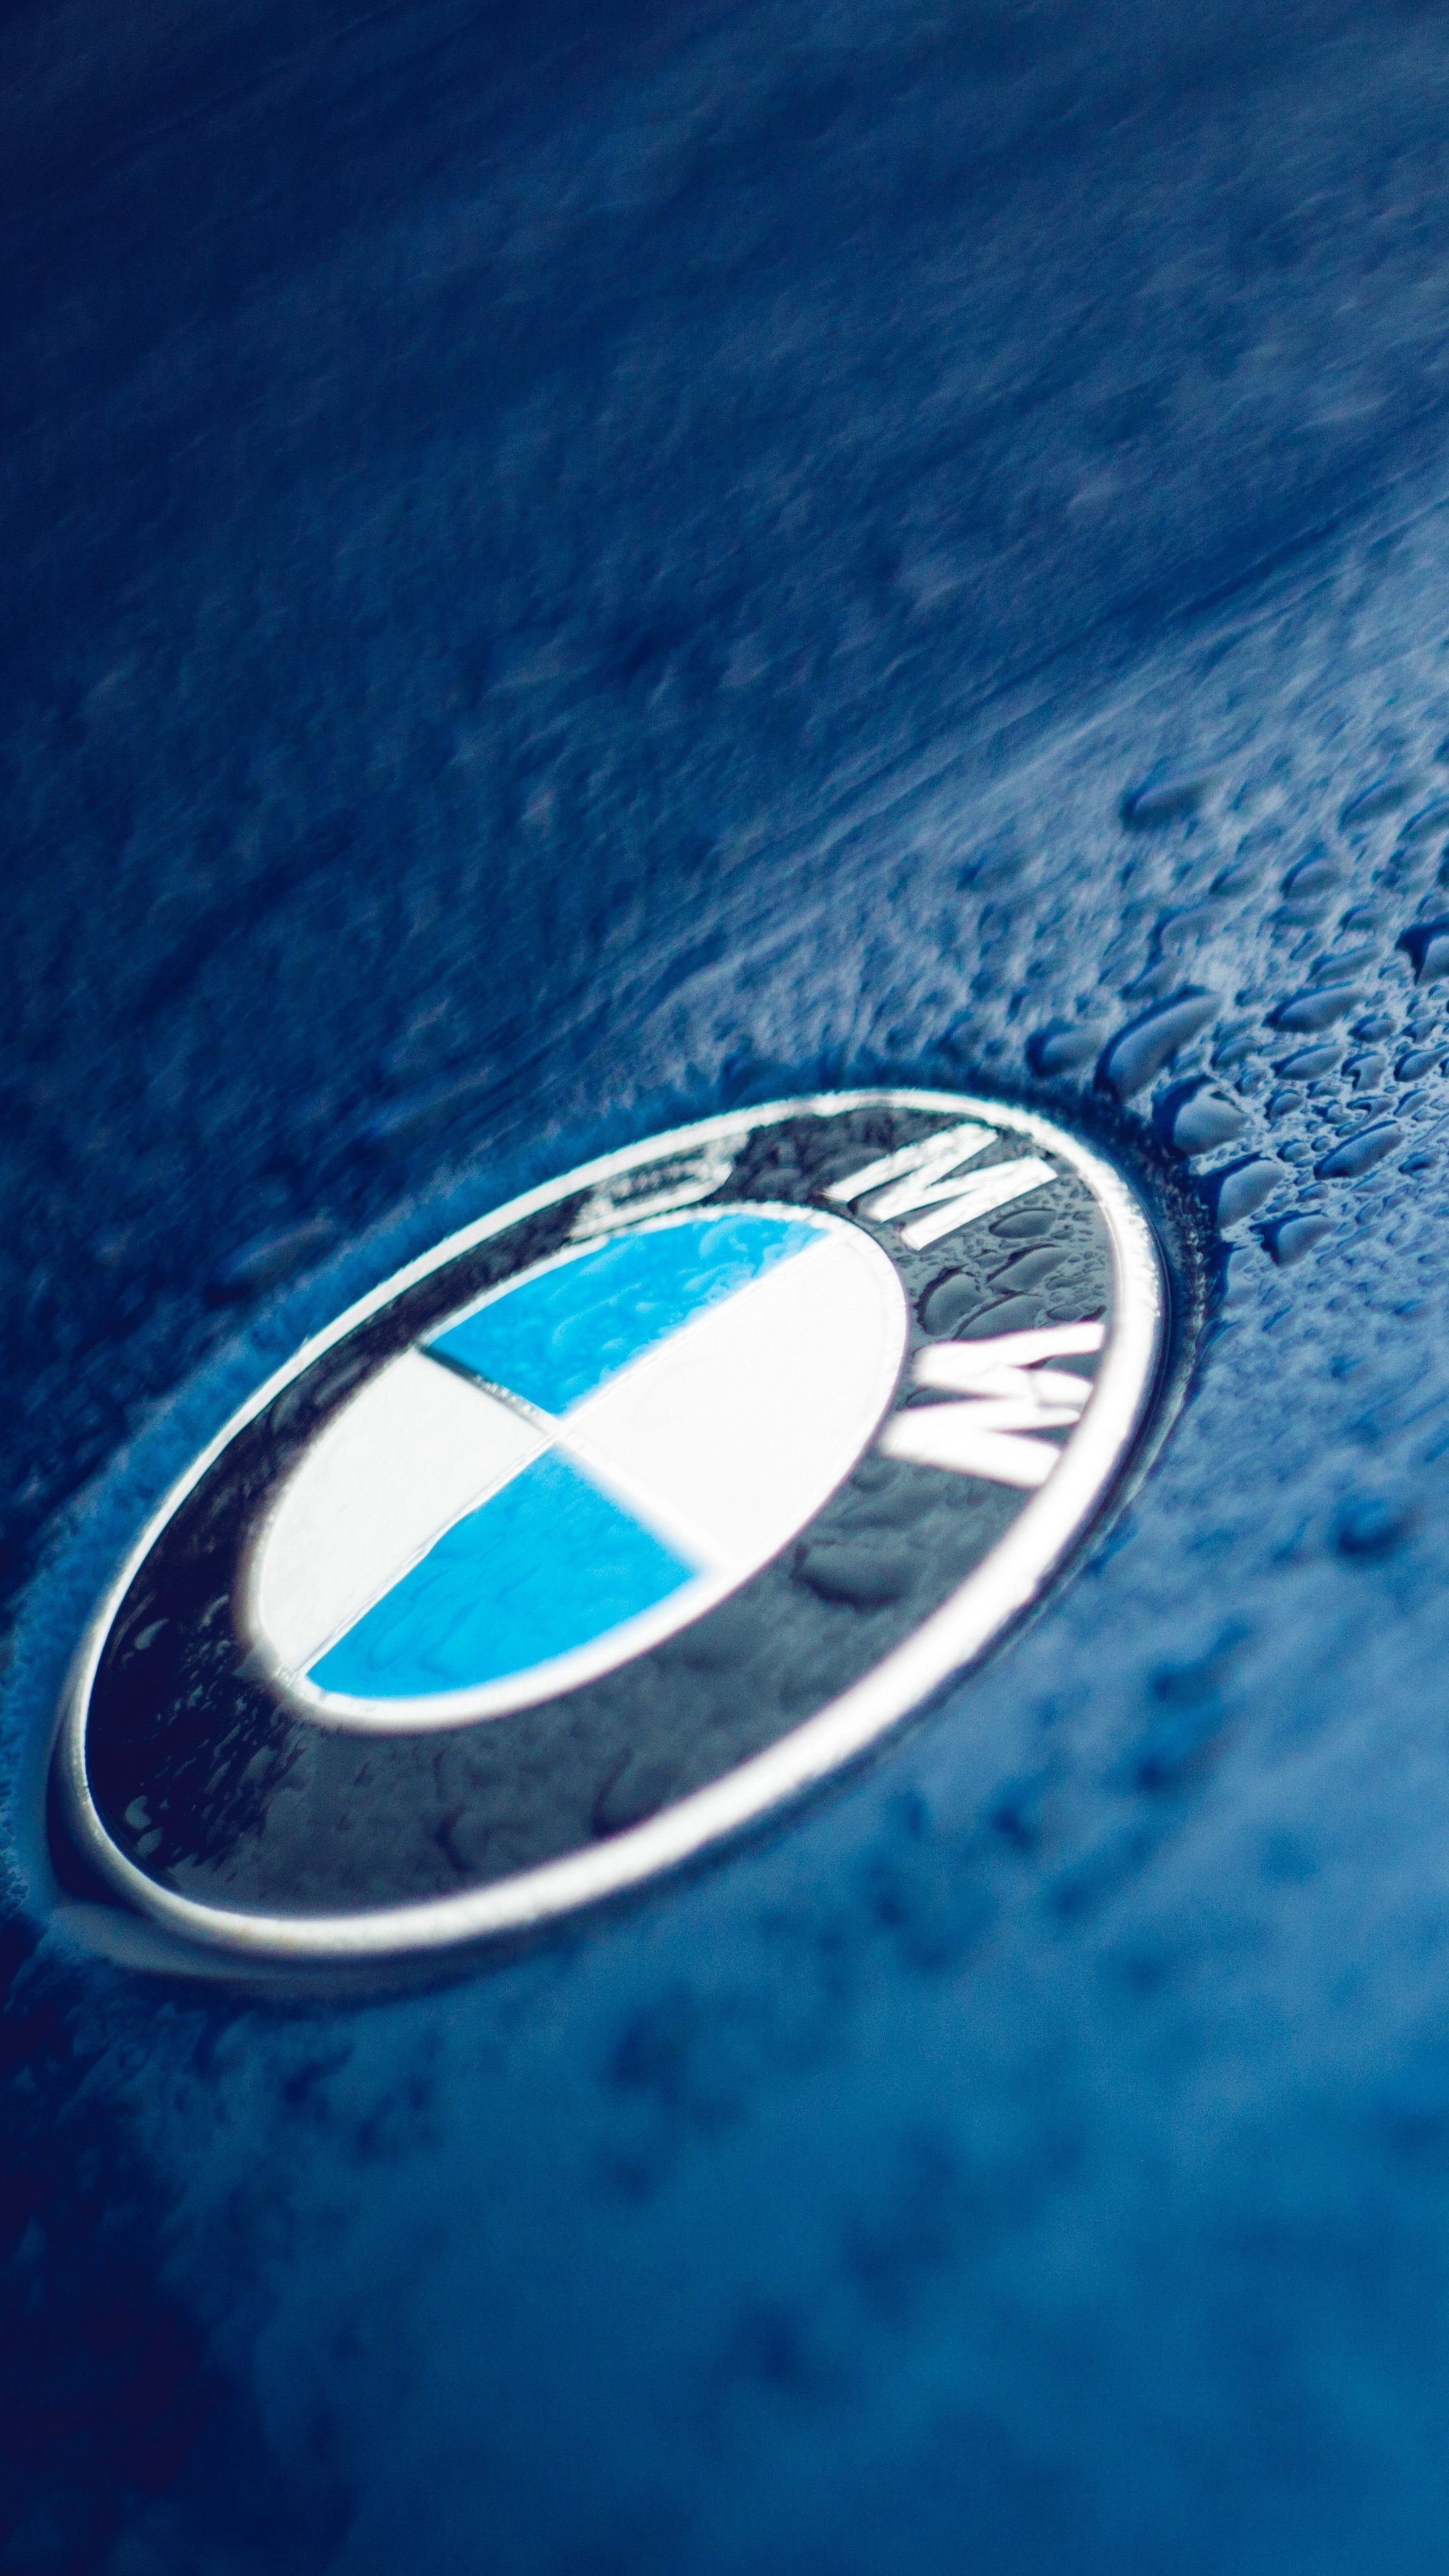 Cool Cars Above Are Luxury Cars That Are Expensive Luxury Cars Remain In Minimal Production So There Are Many People Who Have Act Bmw Logo Bmw Wallpapers Bmw